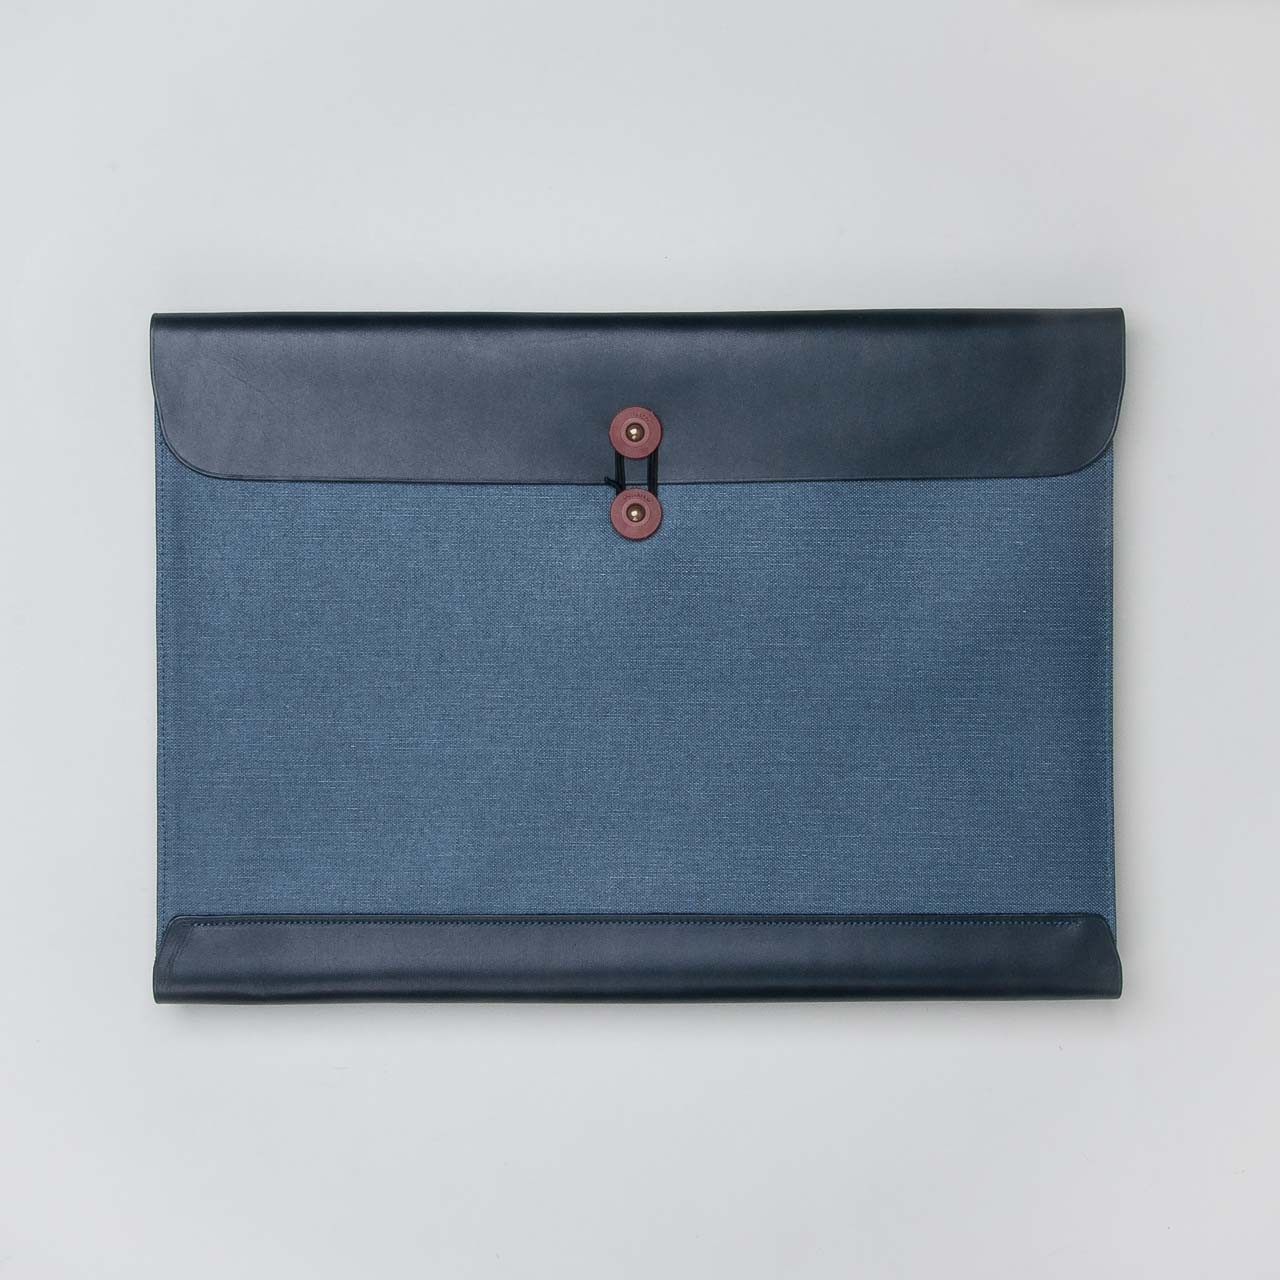 Postalco Legal Envelope blau